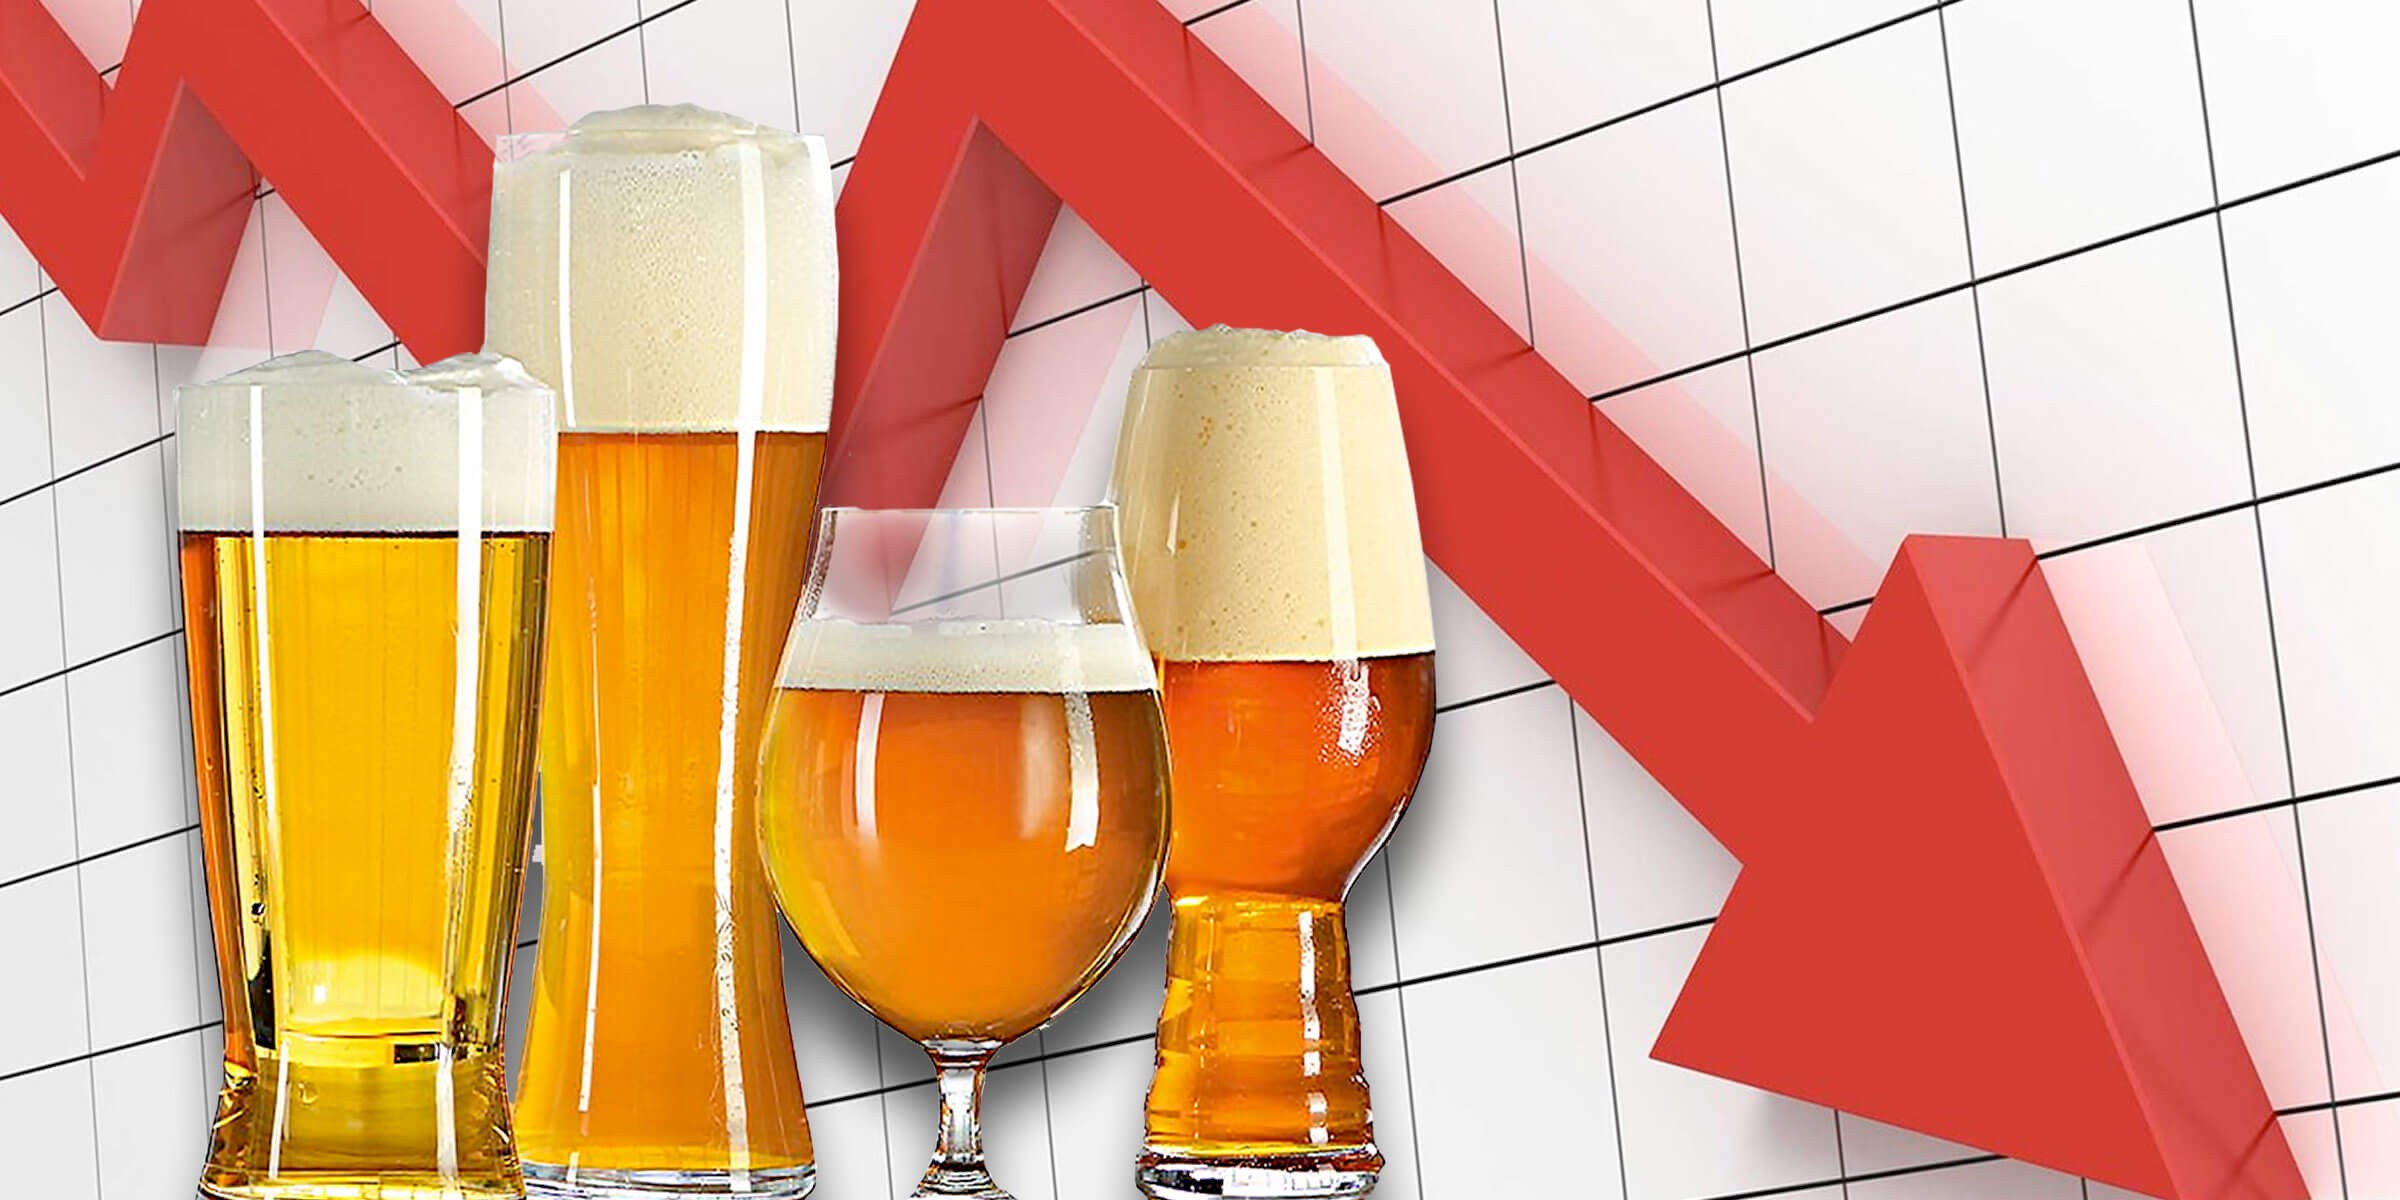 Chart shows contraction of beer industry and/or segment over time.